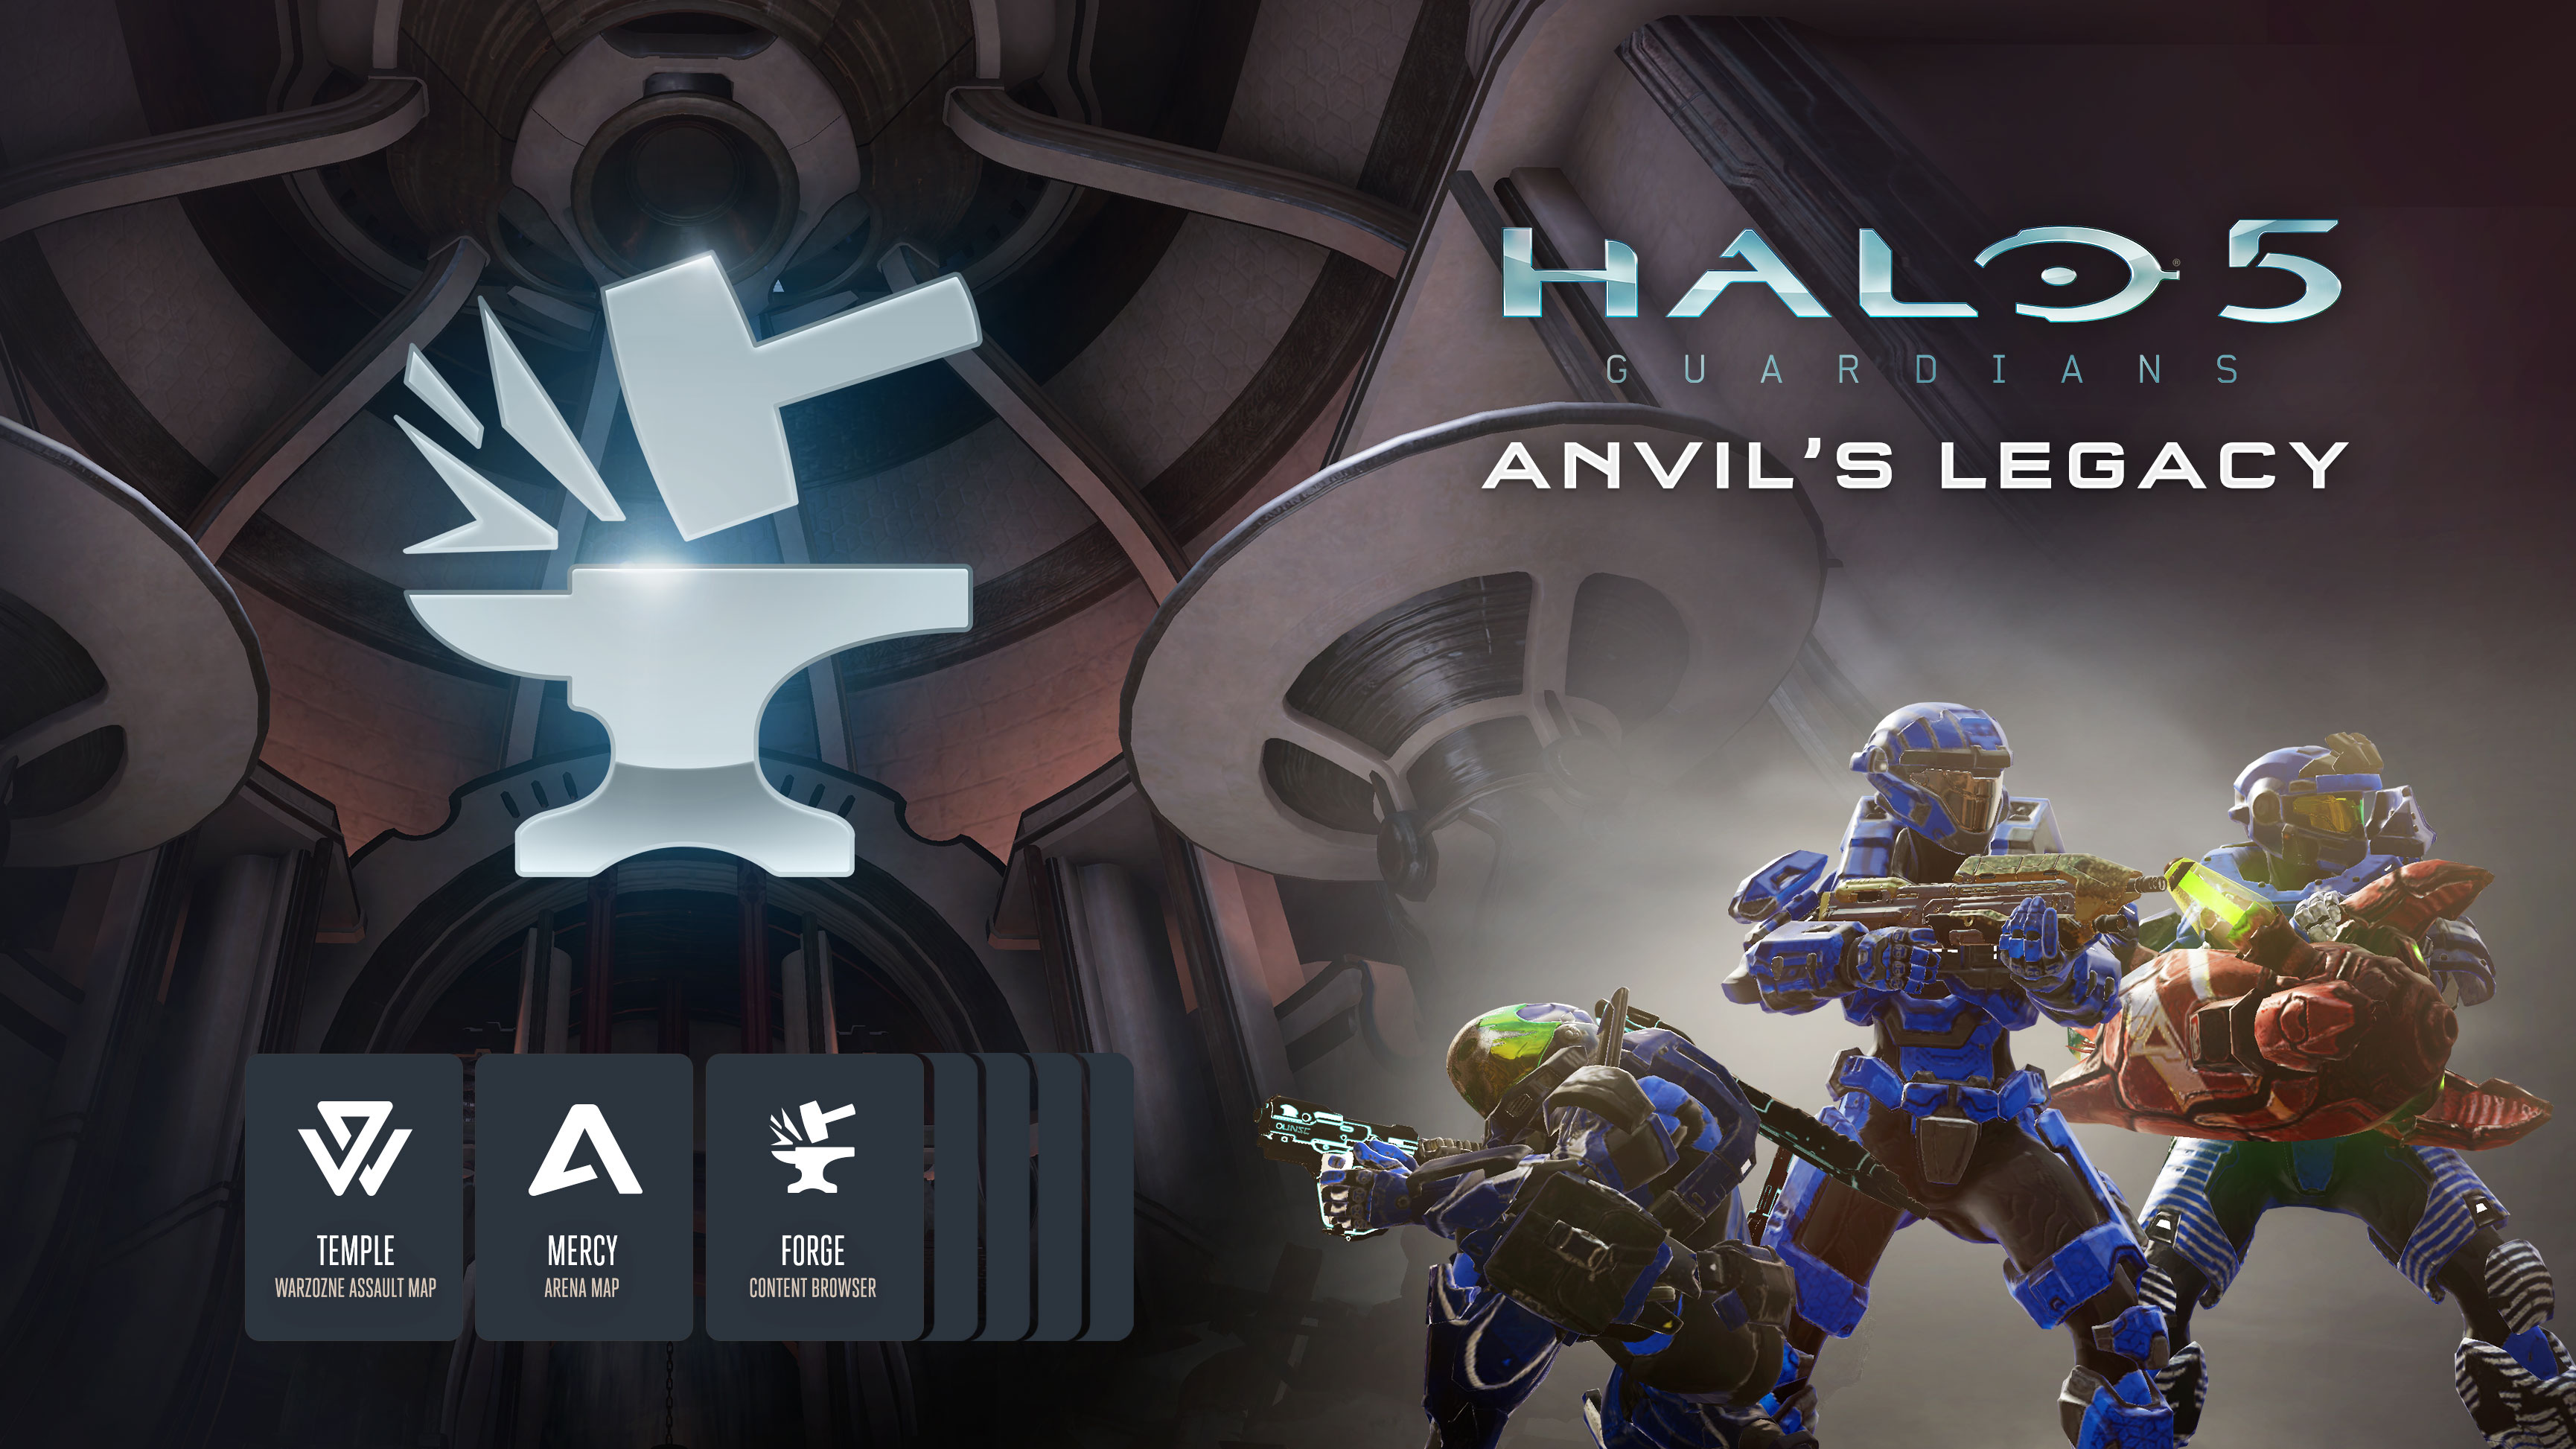 Both Halo 5: Forge for Windows 10 and Halo 5: Guardians